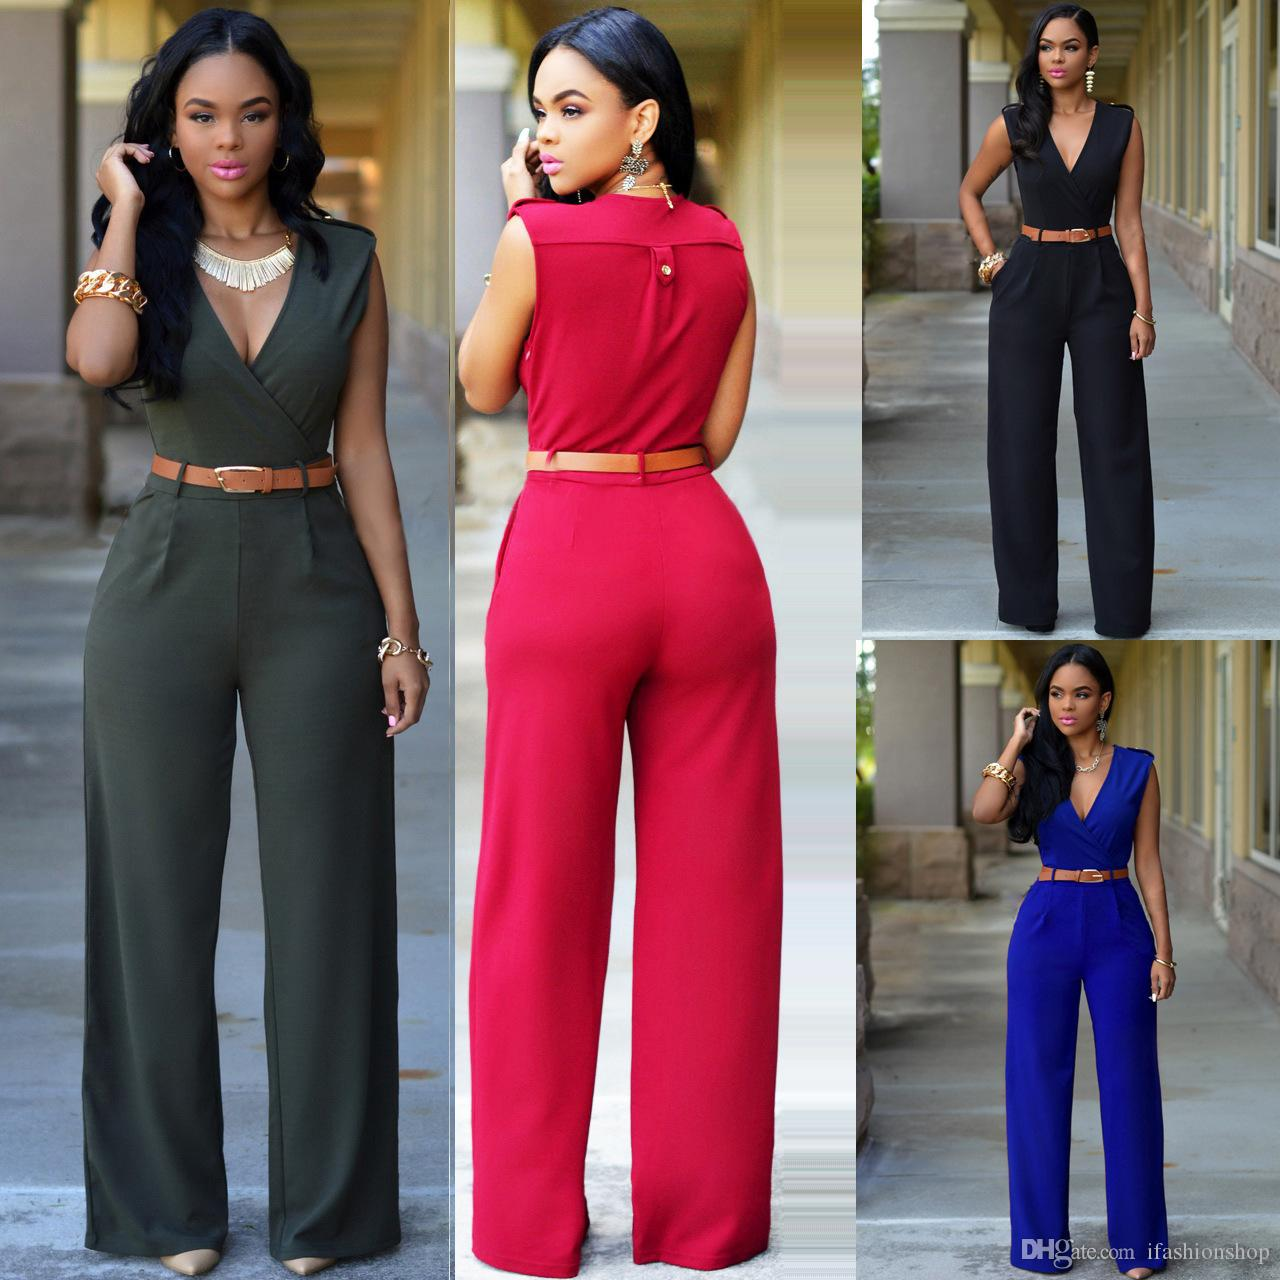 bfc6ec69f4c 2019 Fashion Women S Summer Loose Cultivate One S Morality Leisure Jumpsuits  With Belt Hot Sale Casual Jumpsuits 782 From Ifashionshop